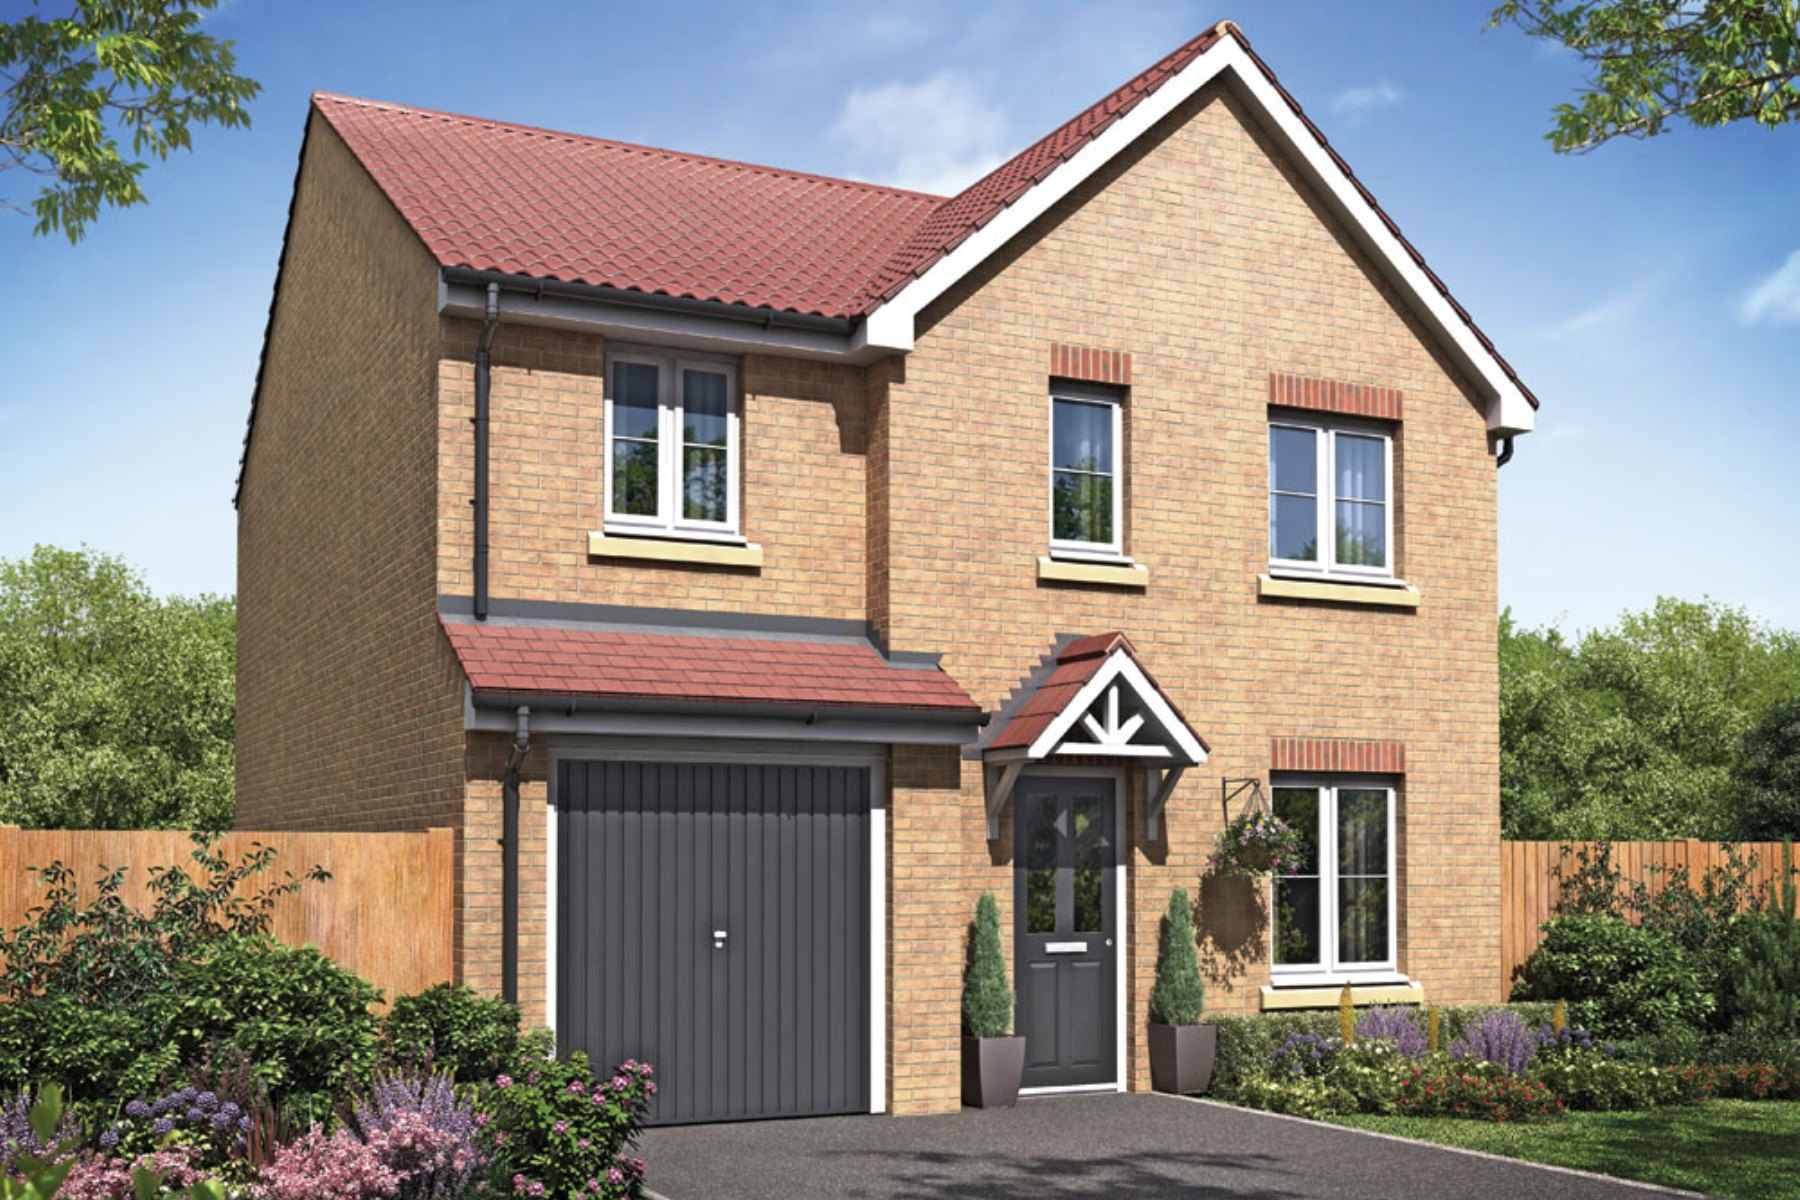 The Bradenham - 4 bedroom new home